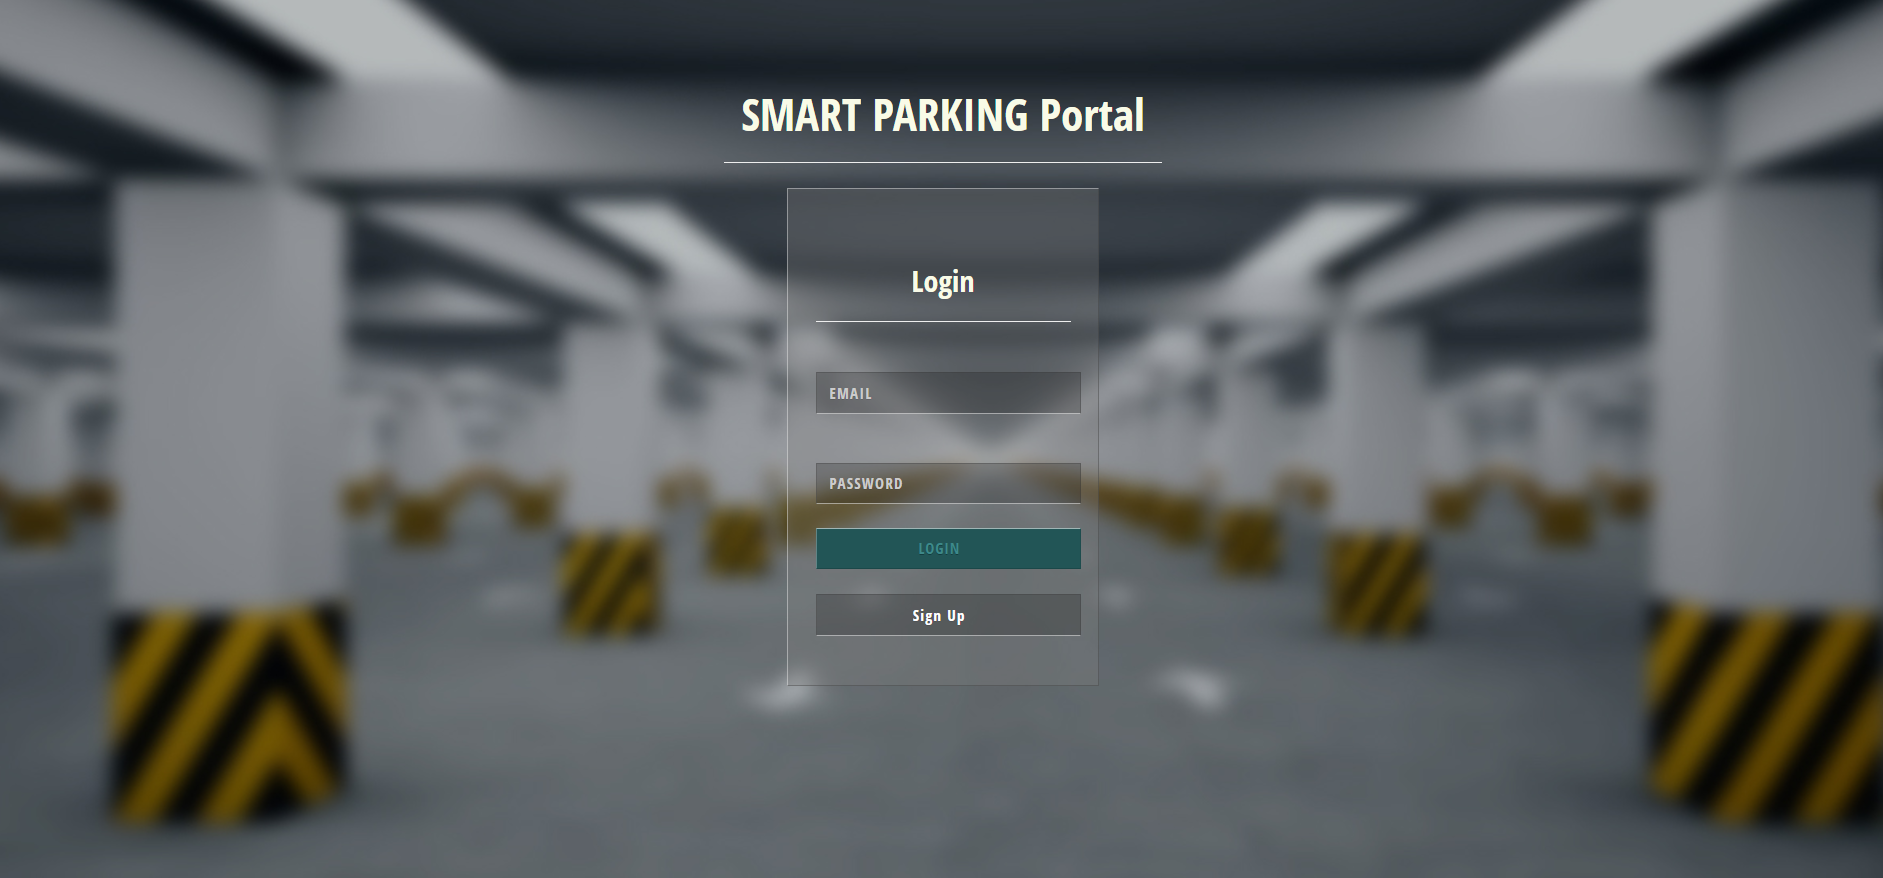 image of parking system